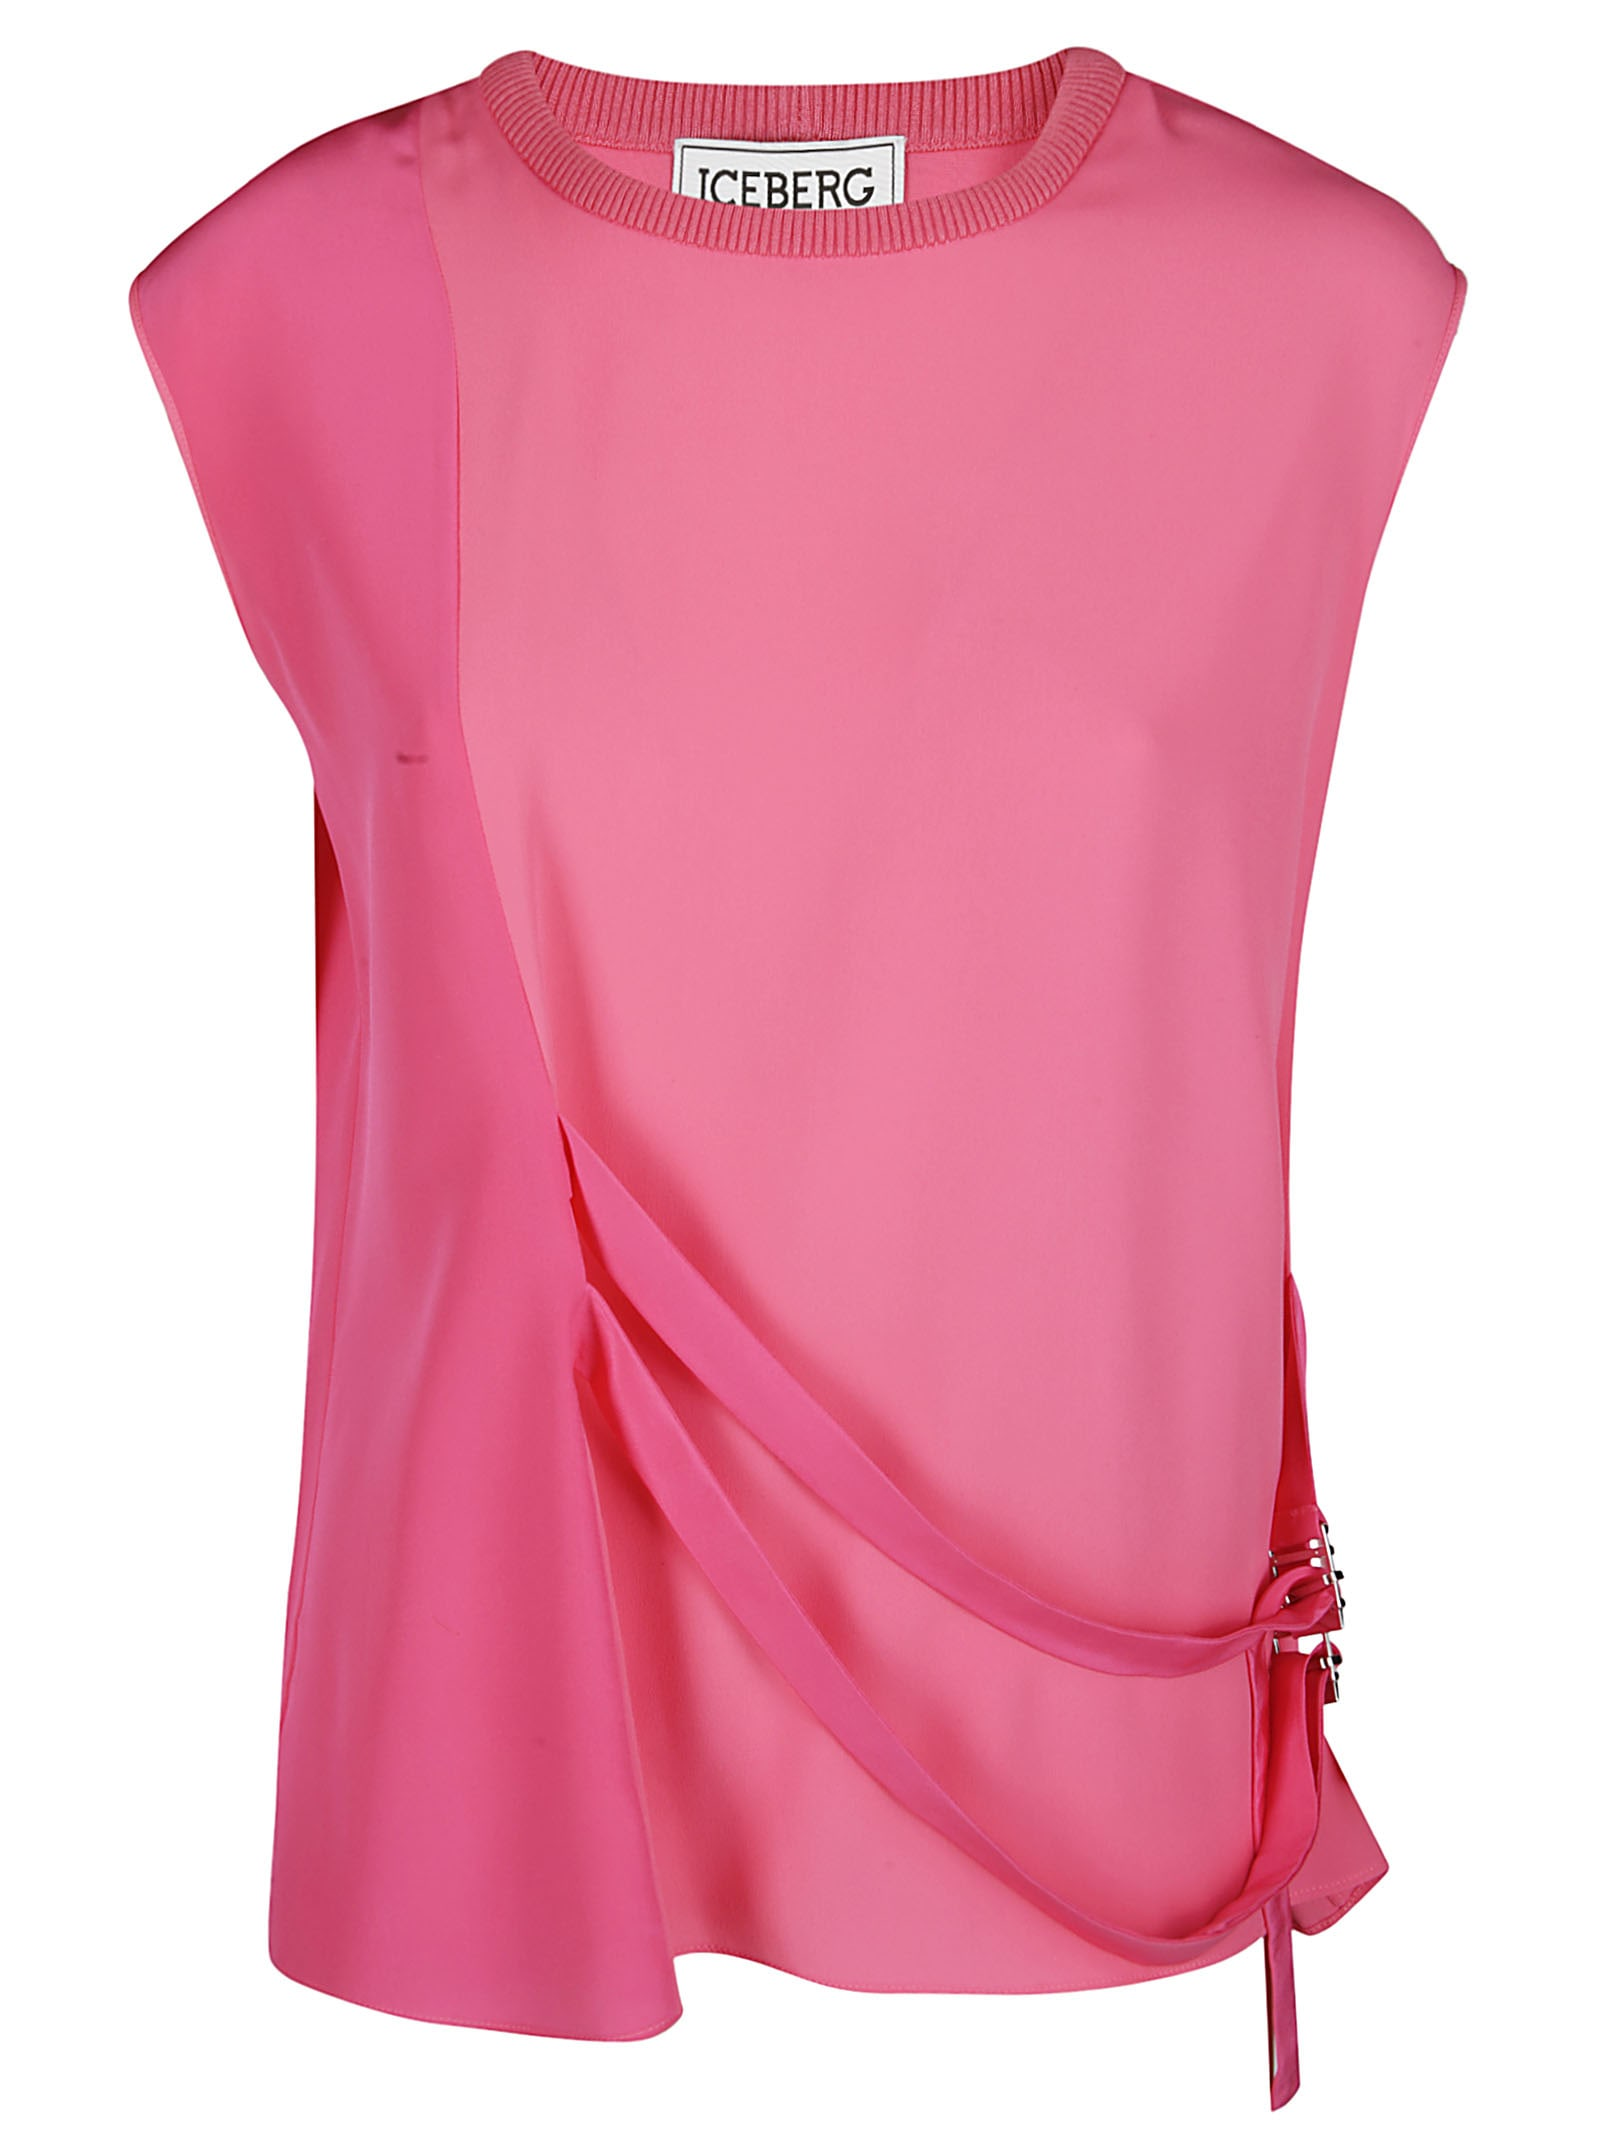 Iceberg Fuchsia Silkk Blend Blouse In Pink & Purple